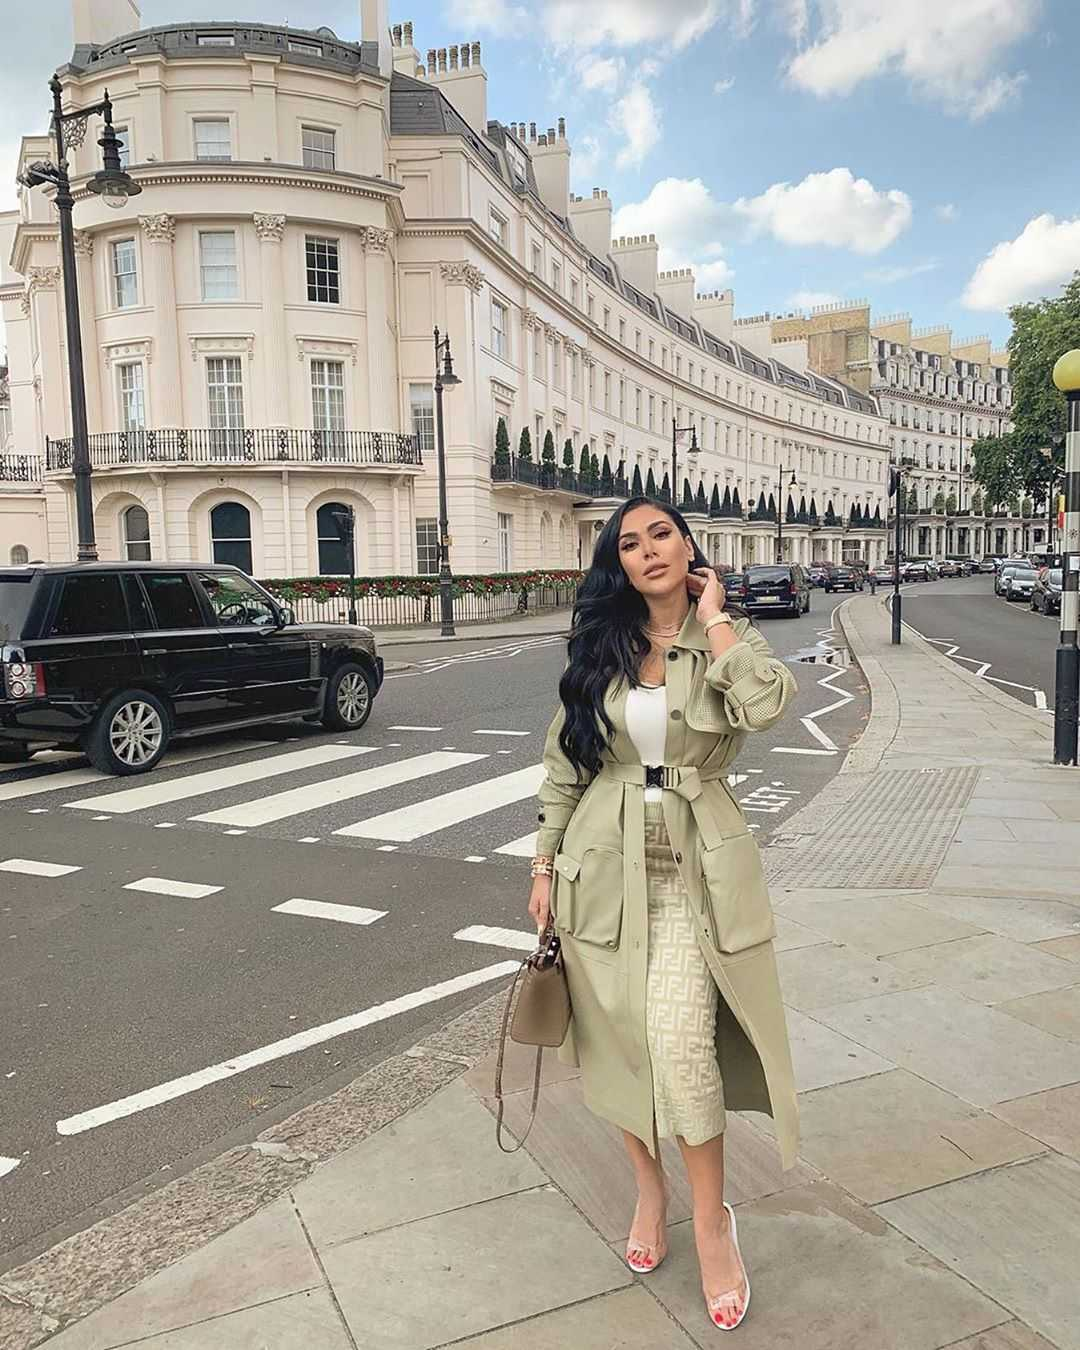 51 Hottest Huda Kattan Big Butt Pictures Which Will Make You Slobber For Her 26